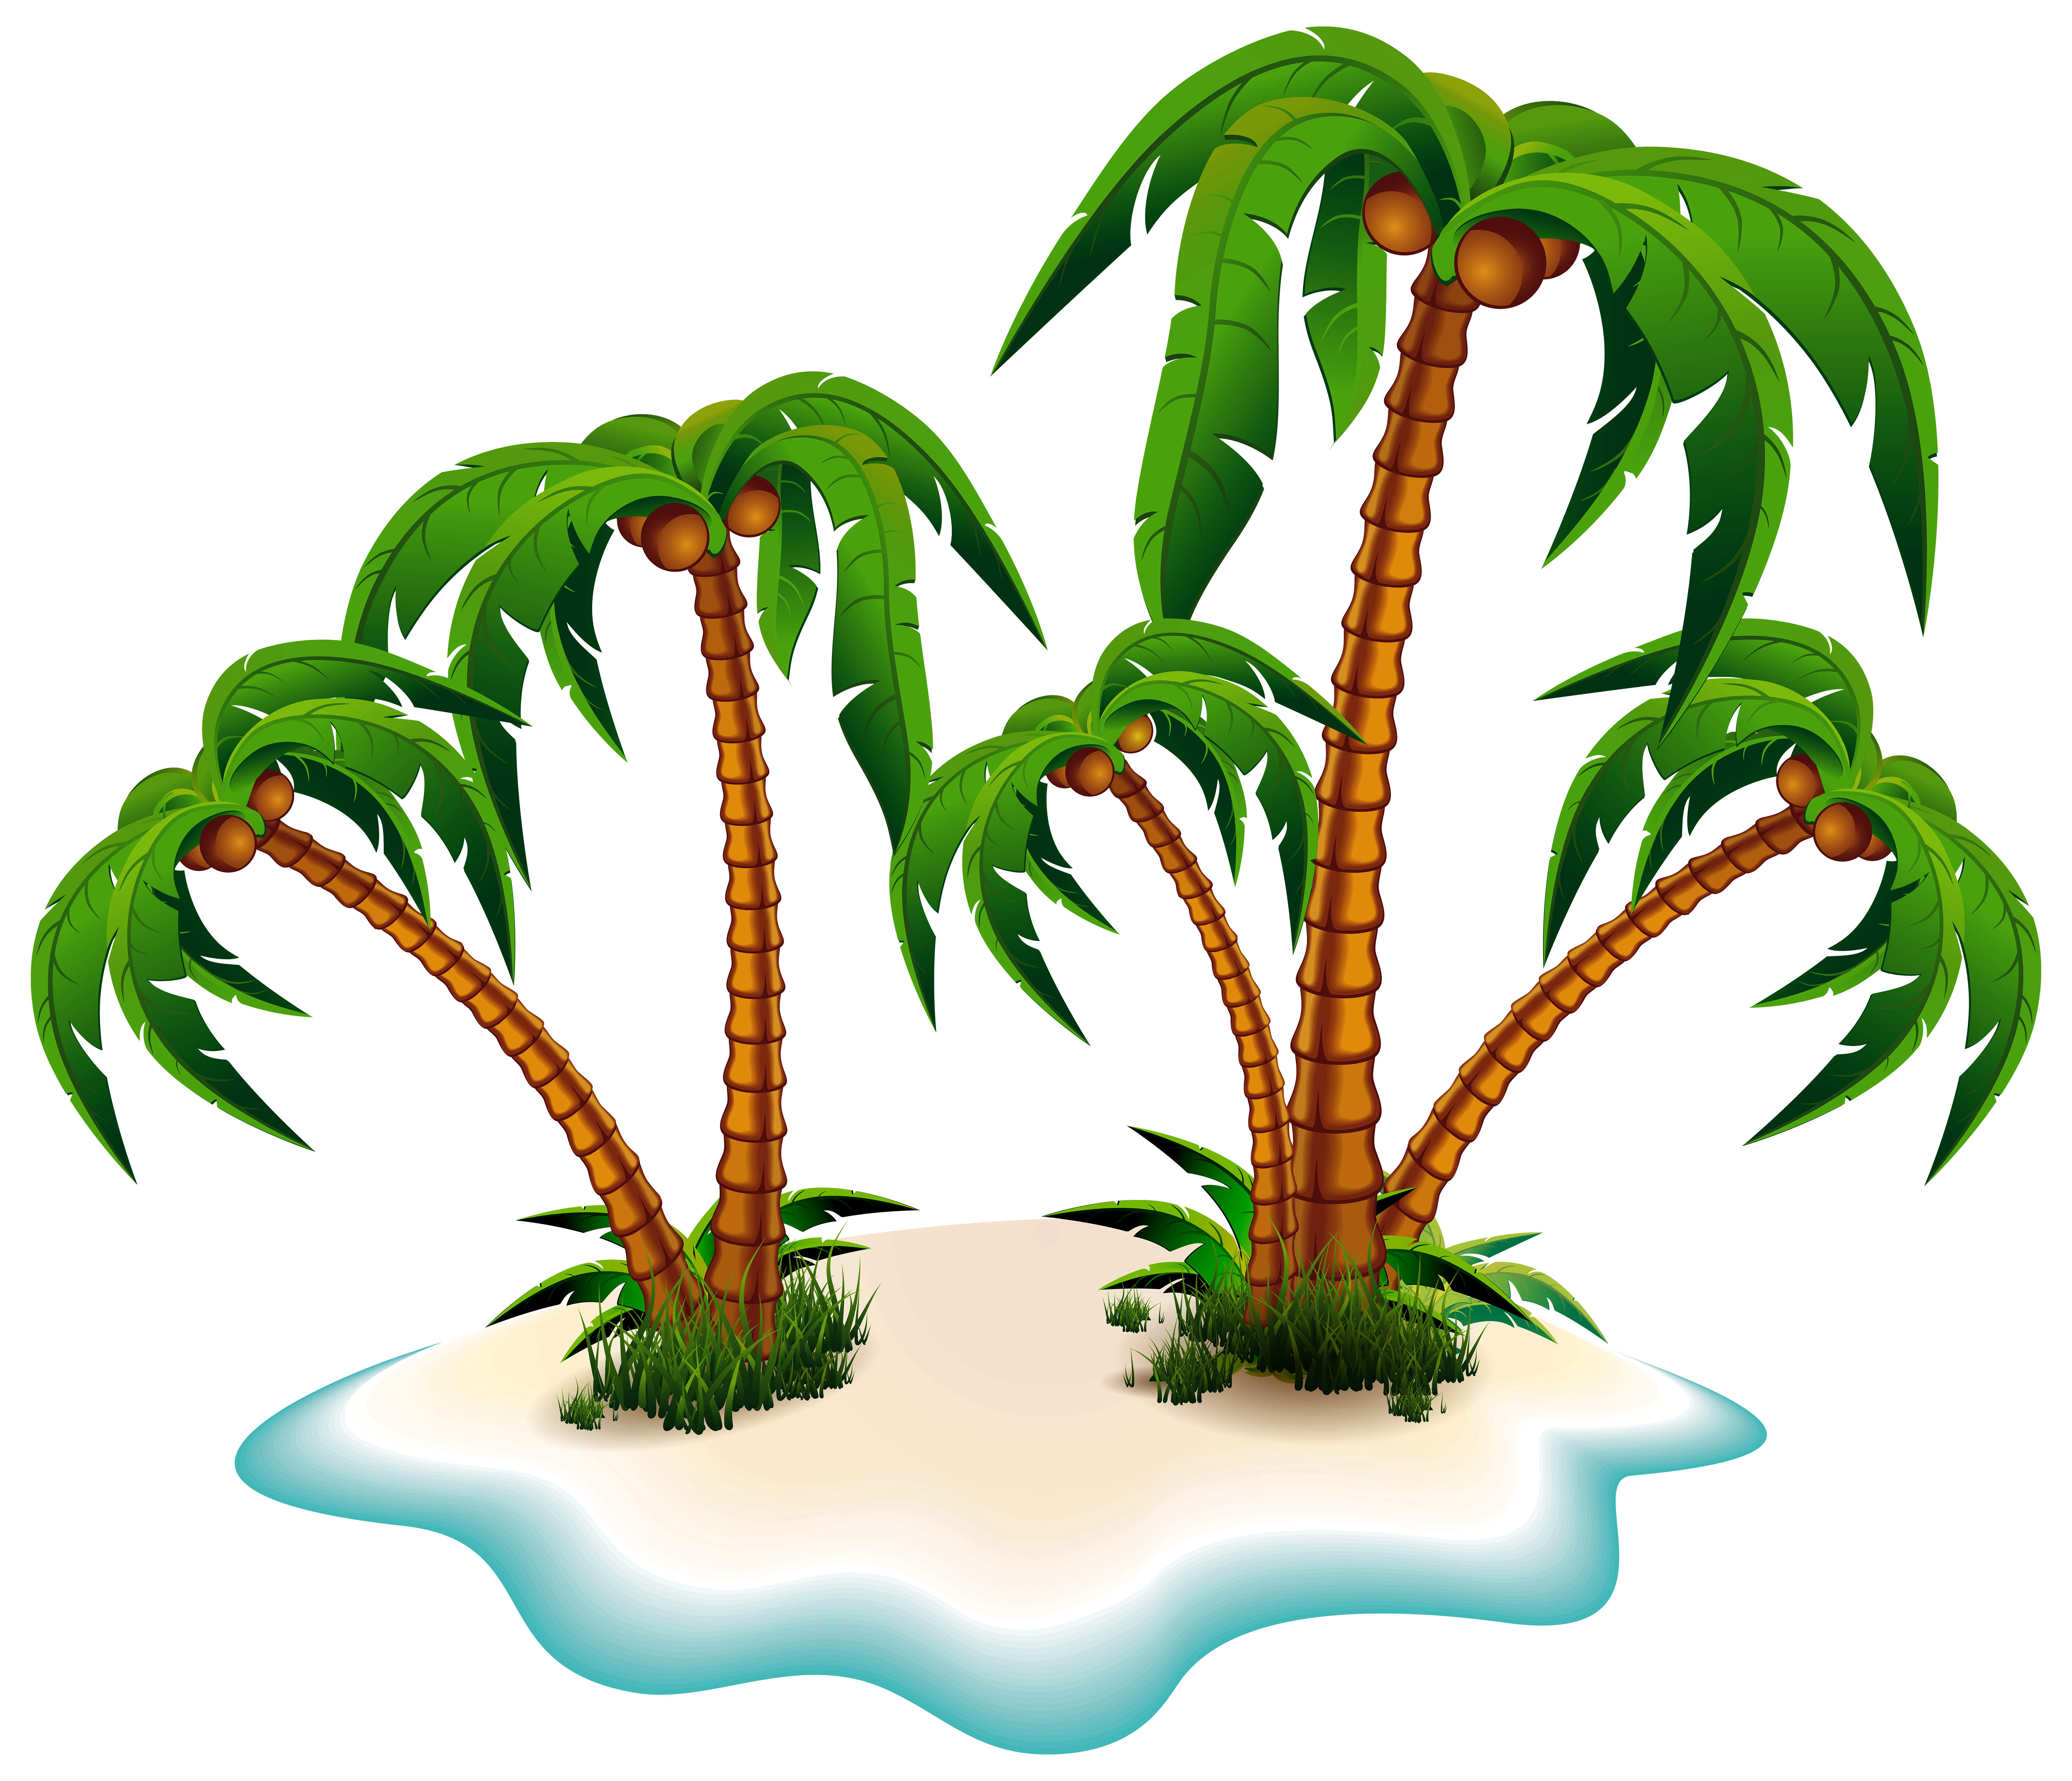 Island palm tree clipart banner black and white stock Island.png - ClipArt Best banner black and white stock